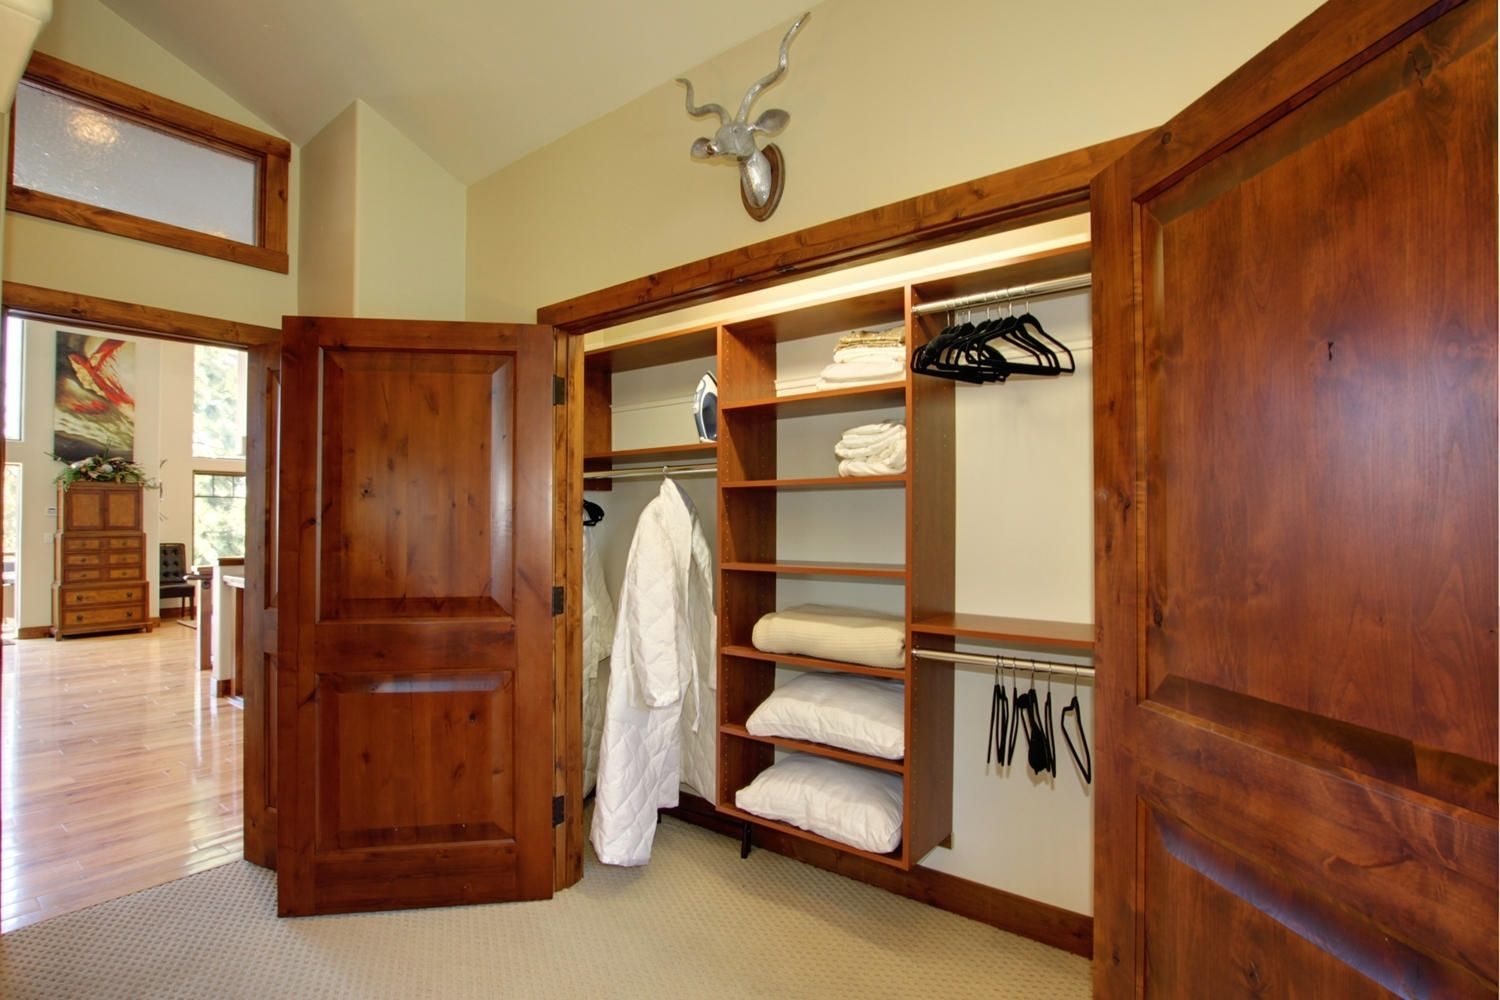 Master Bedroom Closet Design Classy Master Bedroom Closet Design Master Bedroom Closet Design Free Design Ideas